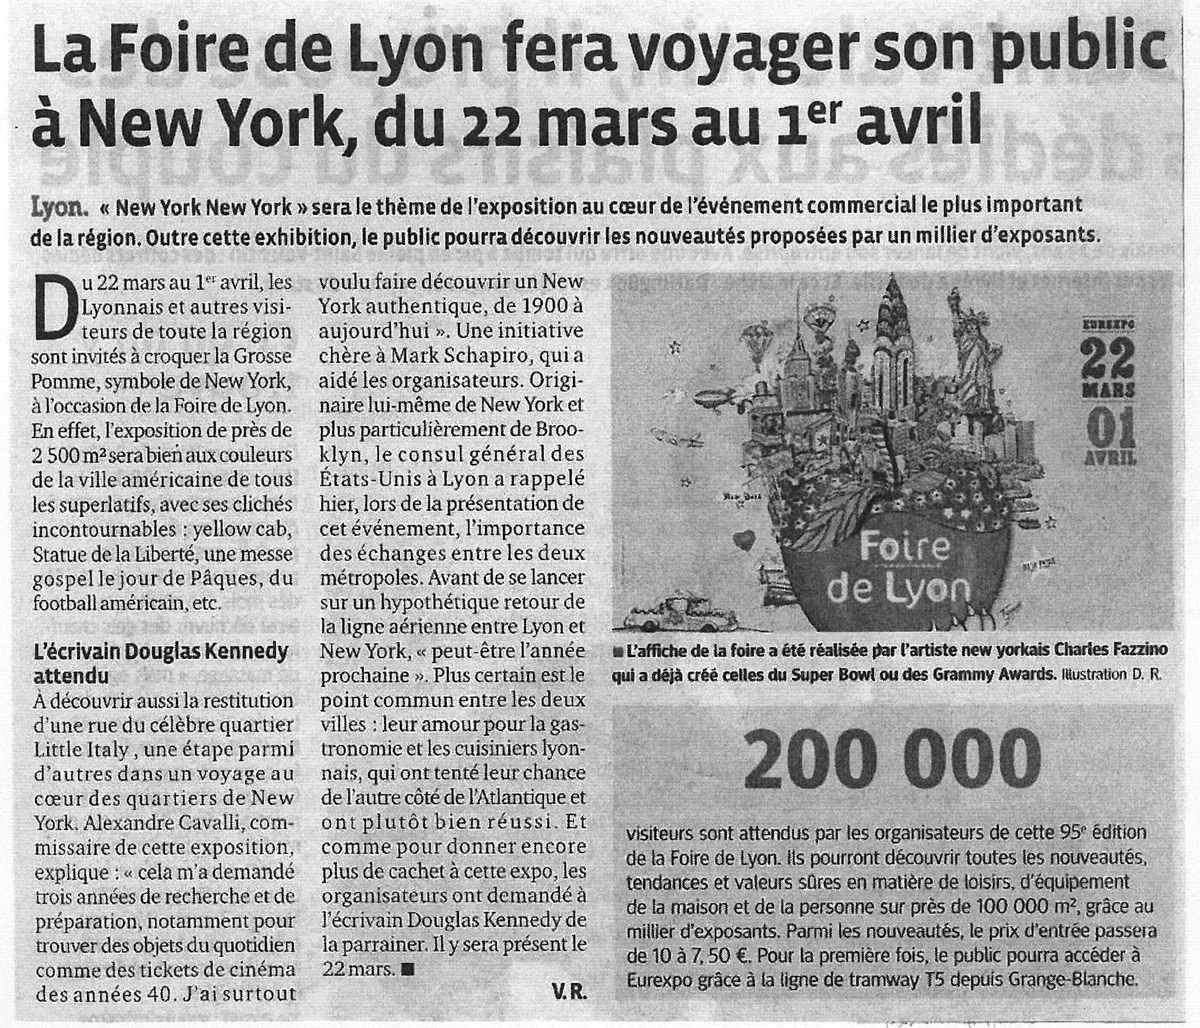 LeProgres-France-FoireDeLyon-Feb-13-2013-LR